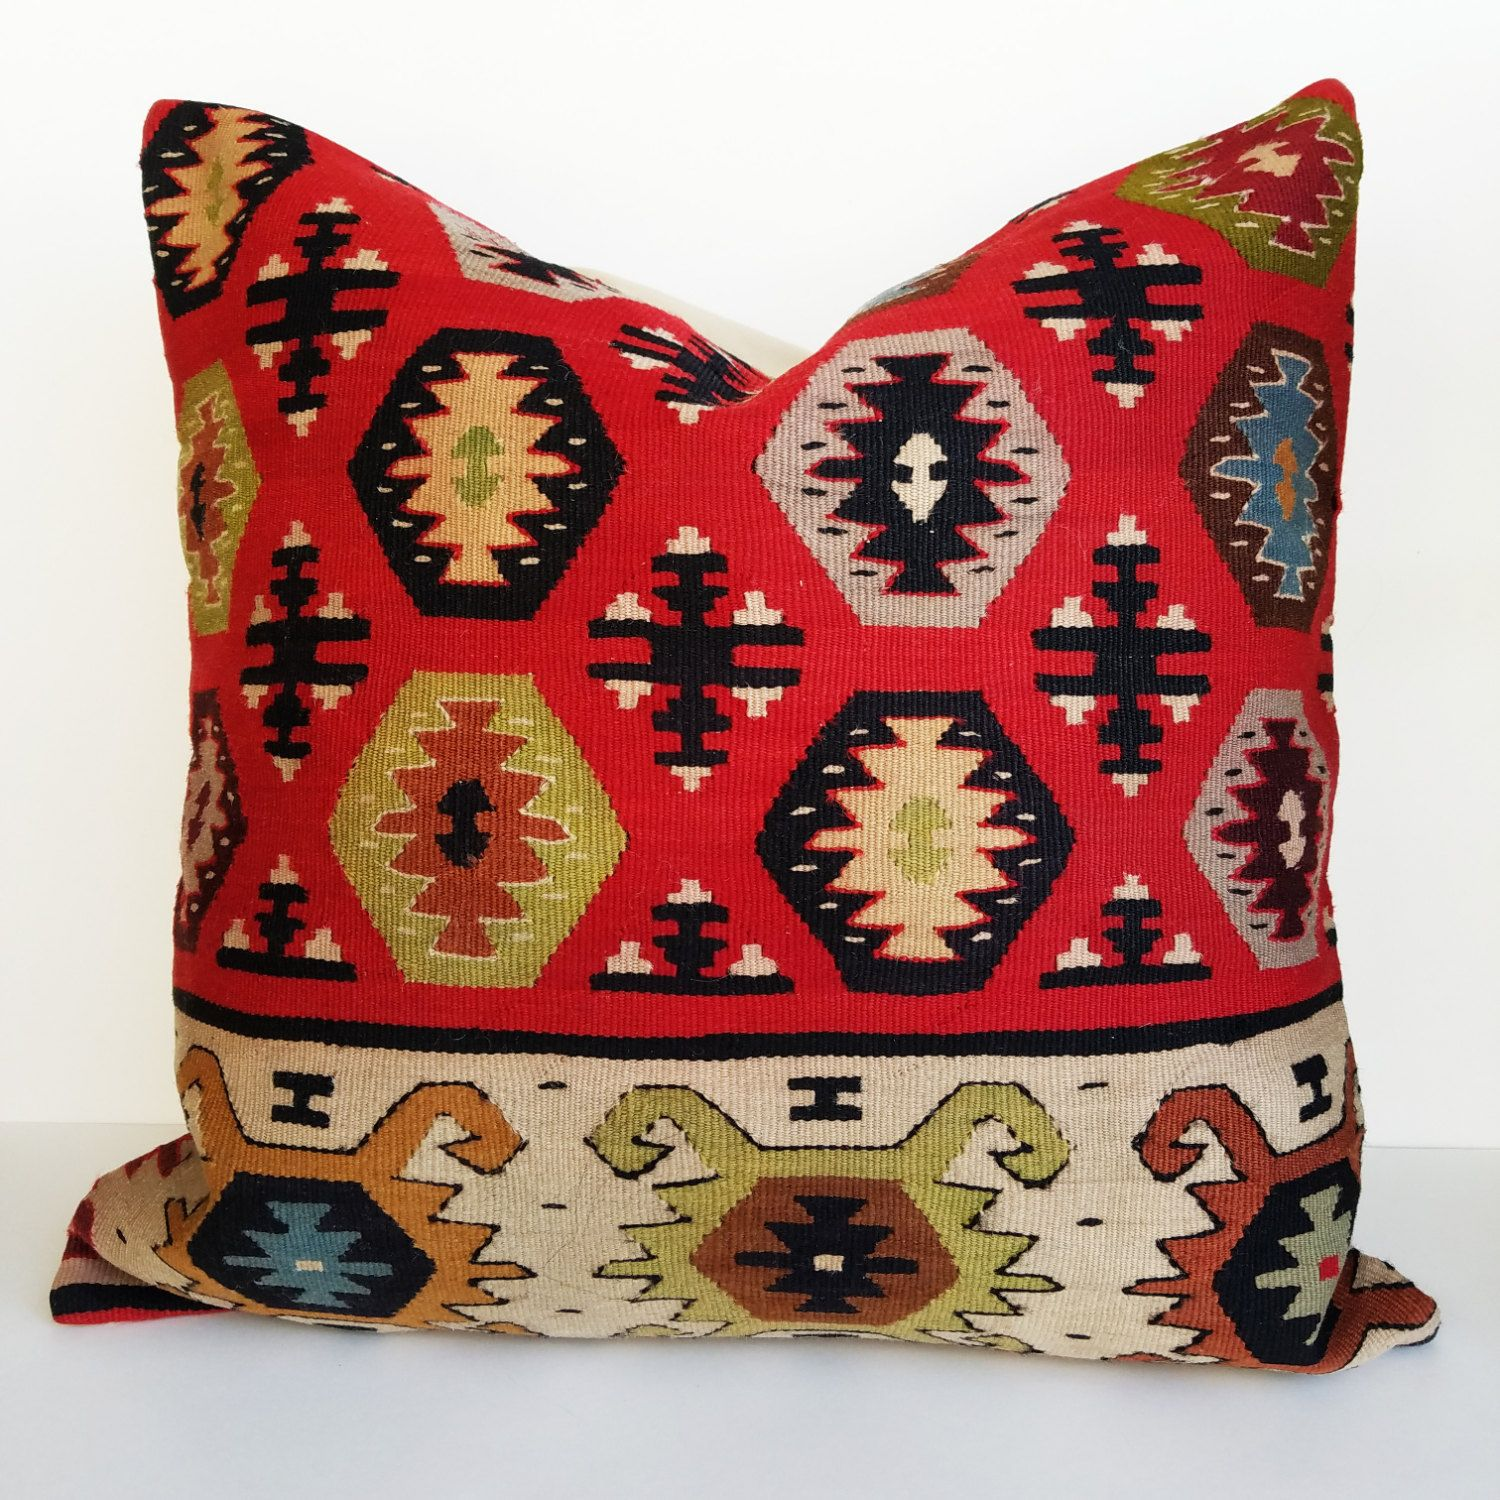 Kilim Pillow with Insert - Made from Vintage Kilim Area Rug ...